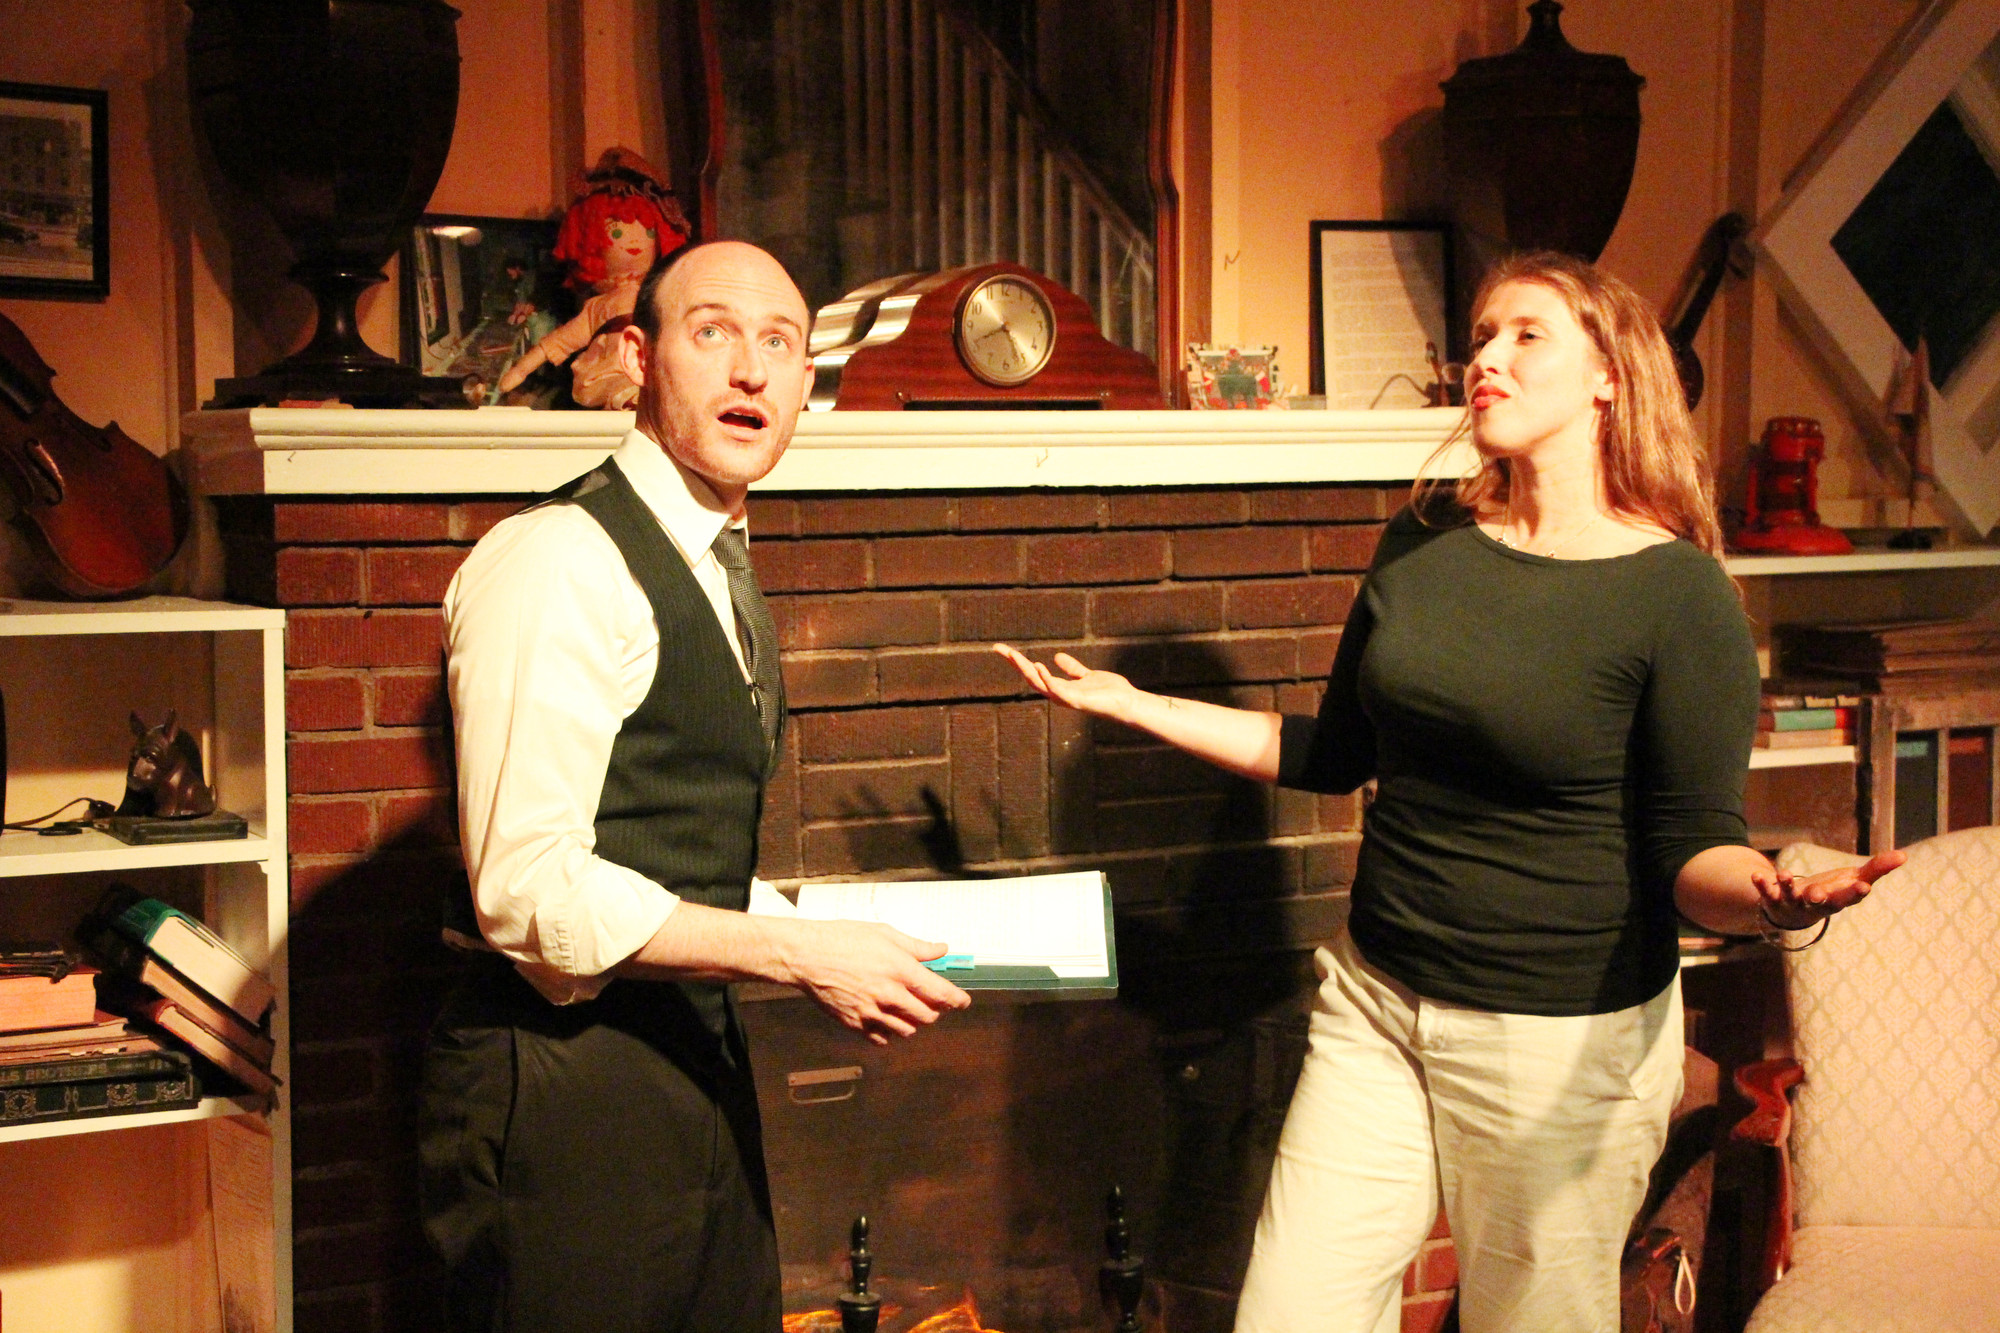 Malverne Community Theatre President David Coonan and Stephanie Ciantro performed stories of the Grimm Brothers.